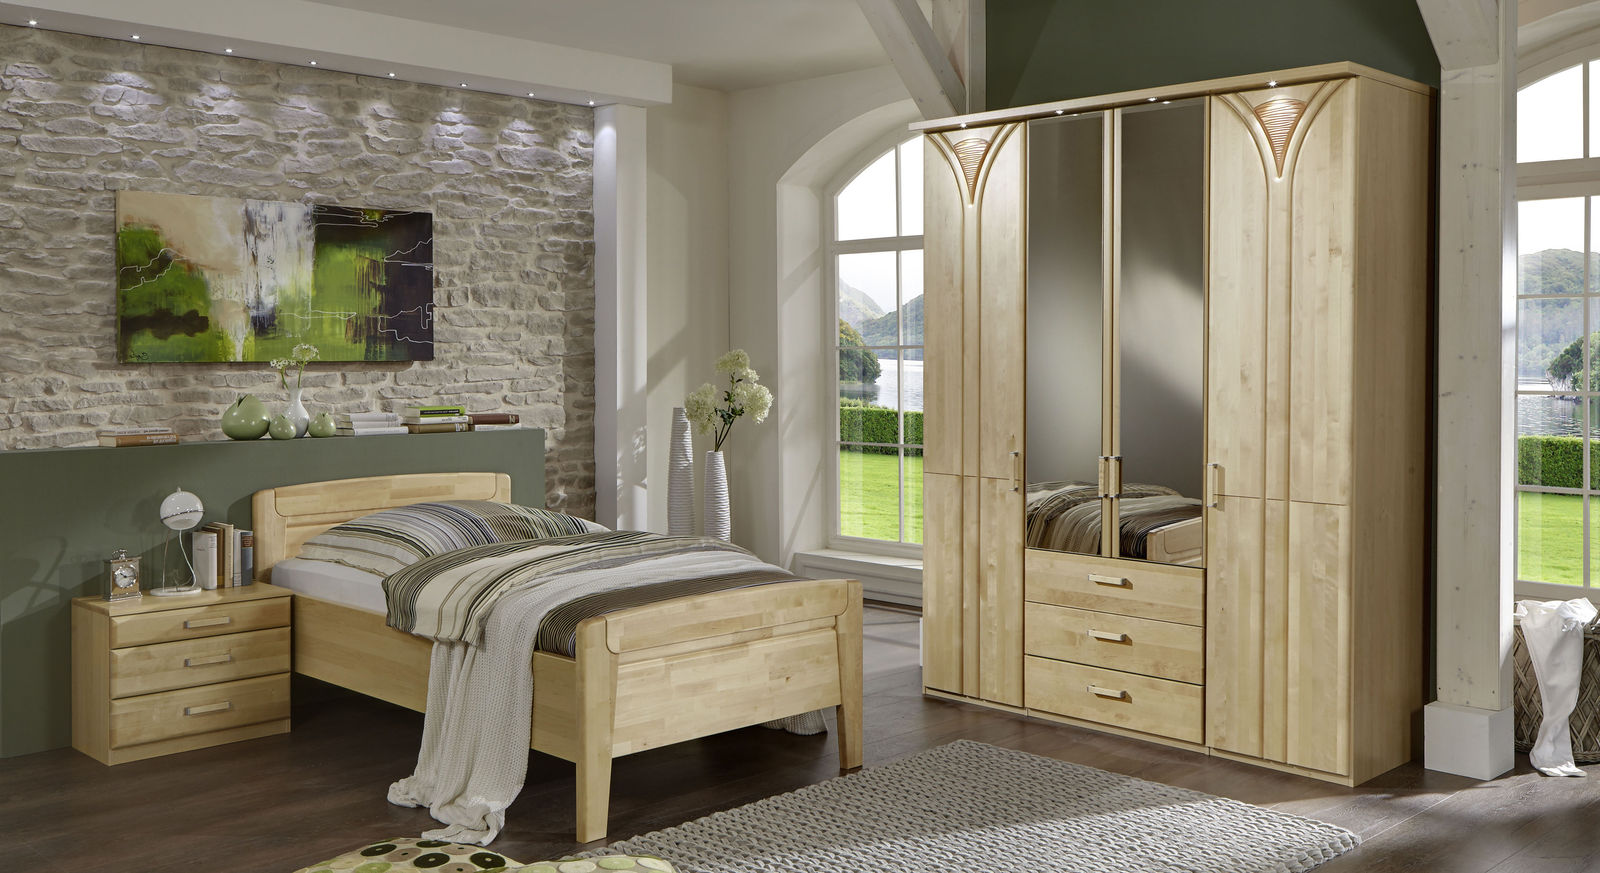 seniorengerechtes schlafzimmer komplett birke teilmassiv tonga. Black Bedroom Furniture Sets. Home Design Ideas